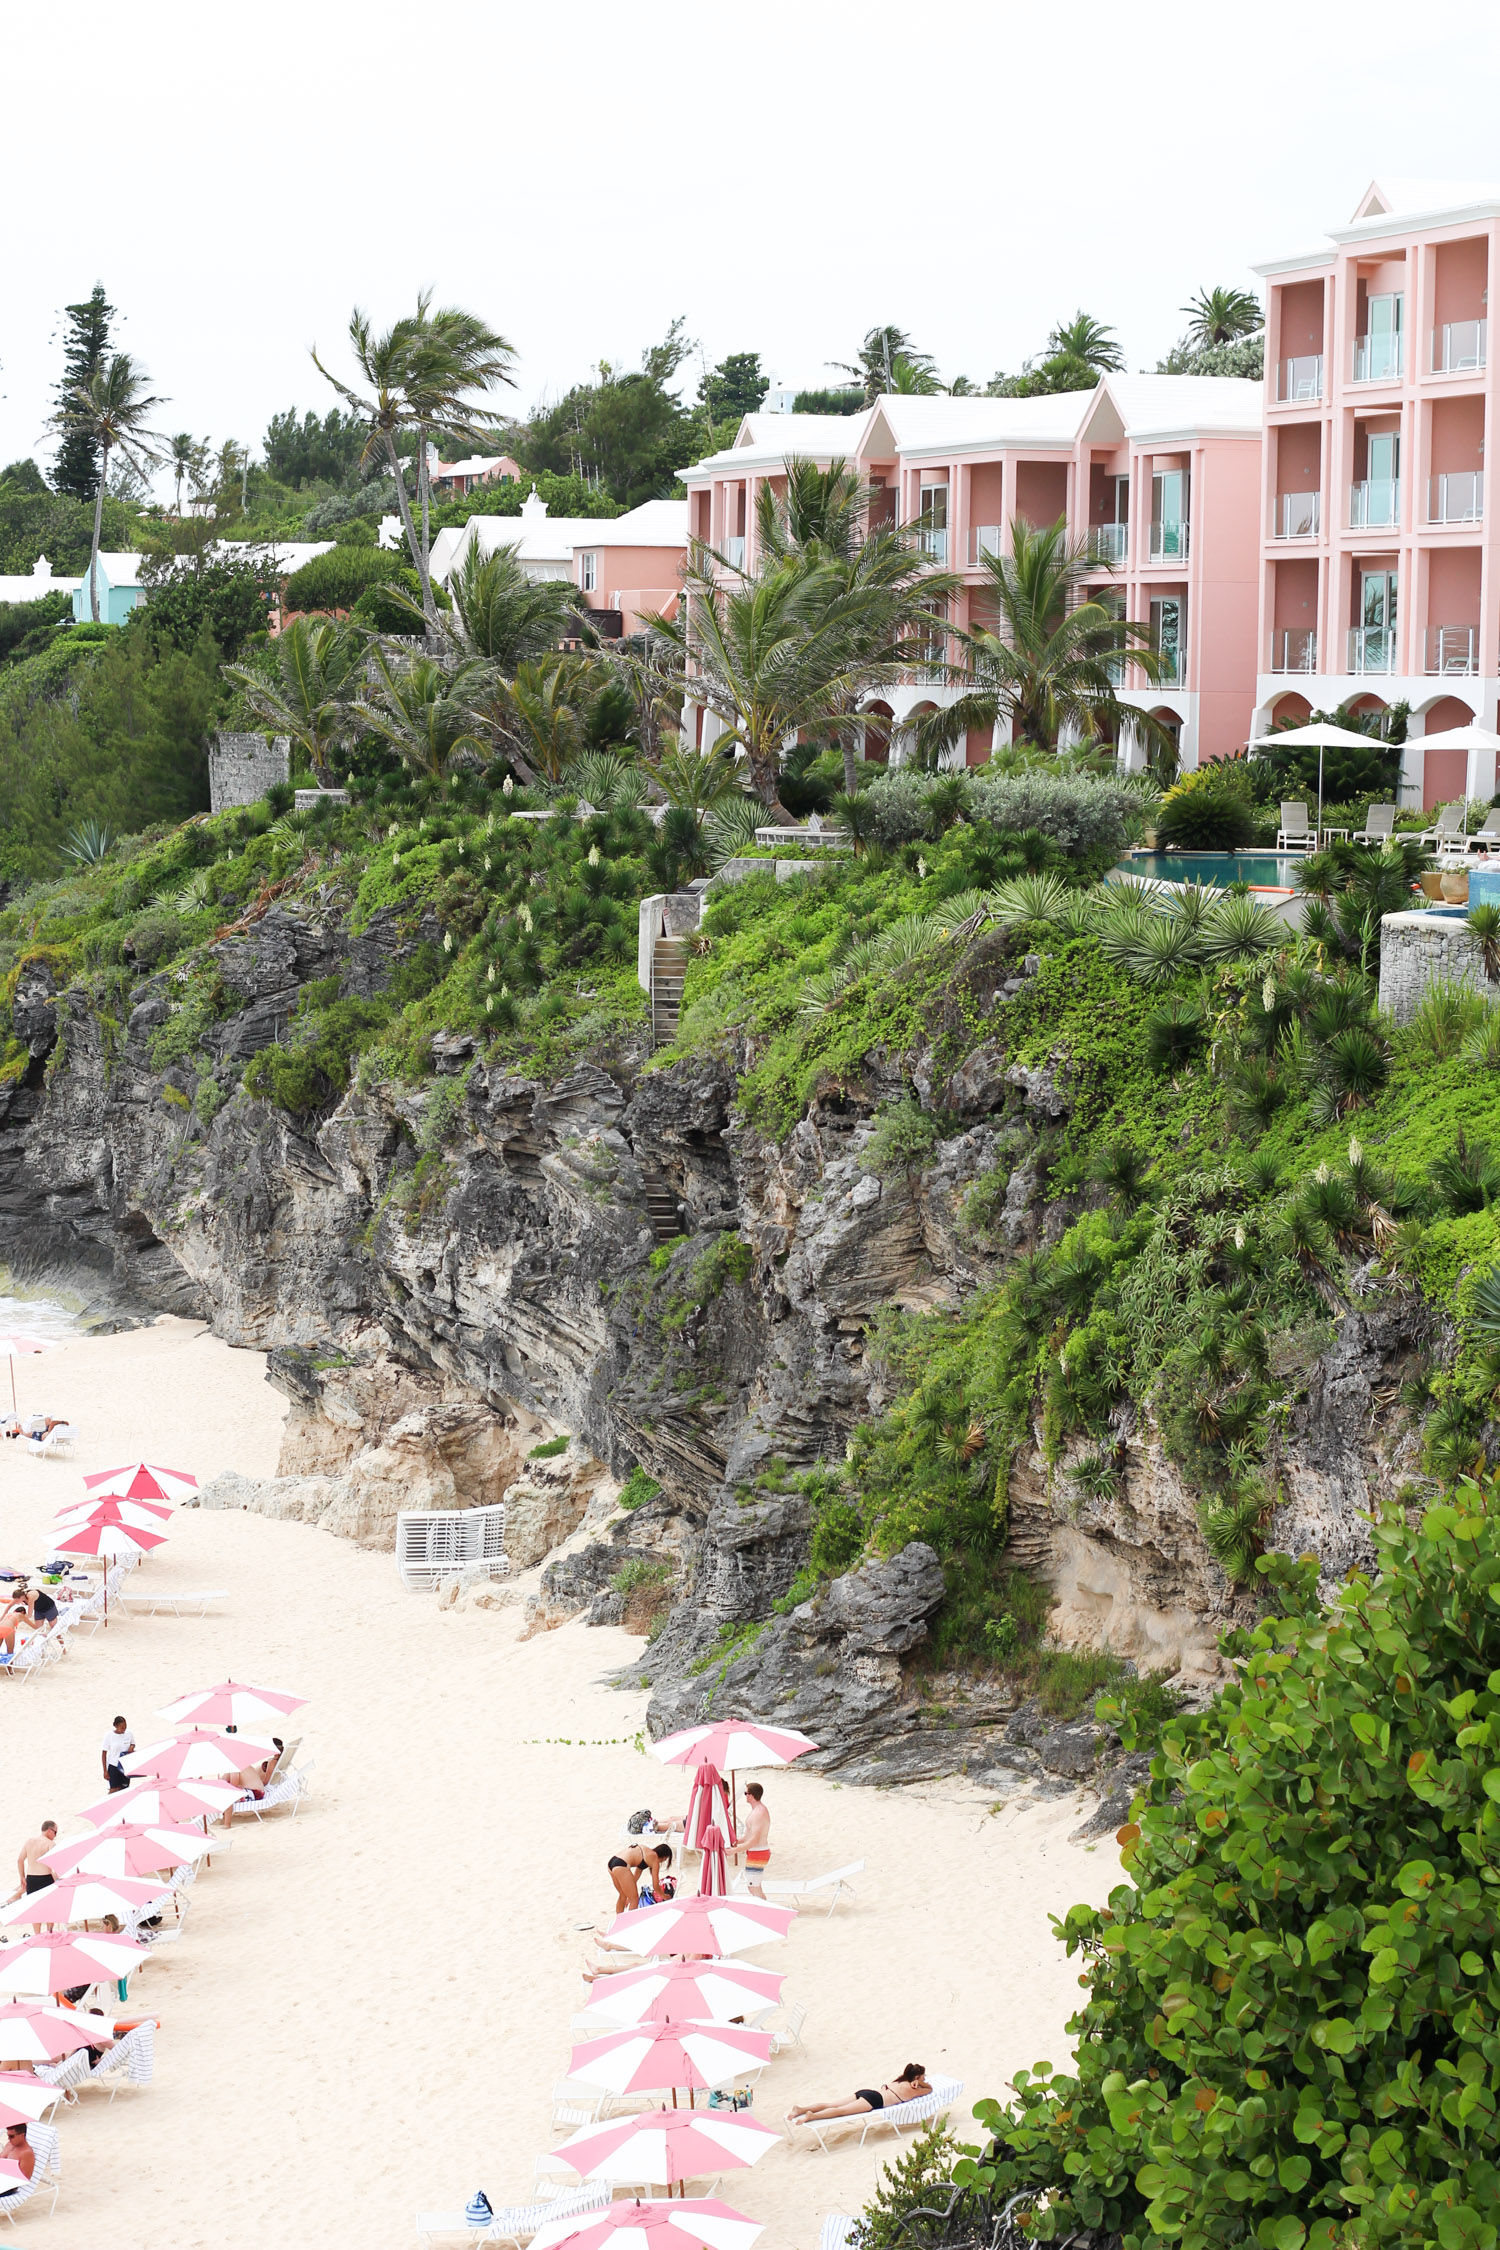 The Reefs, Bermuda | Bermuda travel guide featured by popular DC travel blogger, Monica Dutia